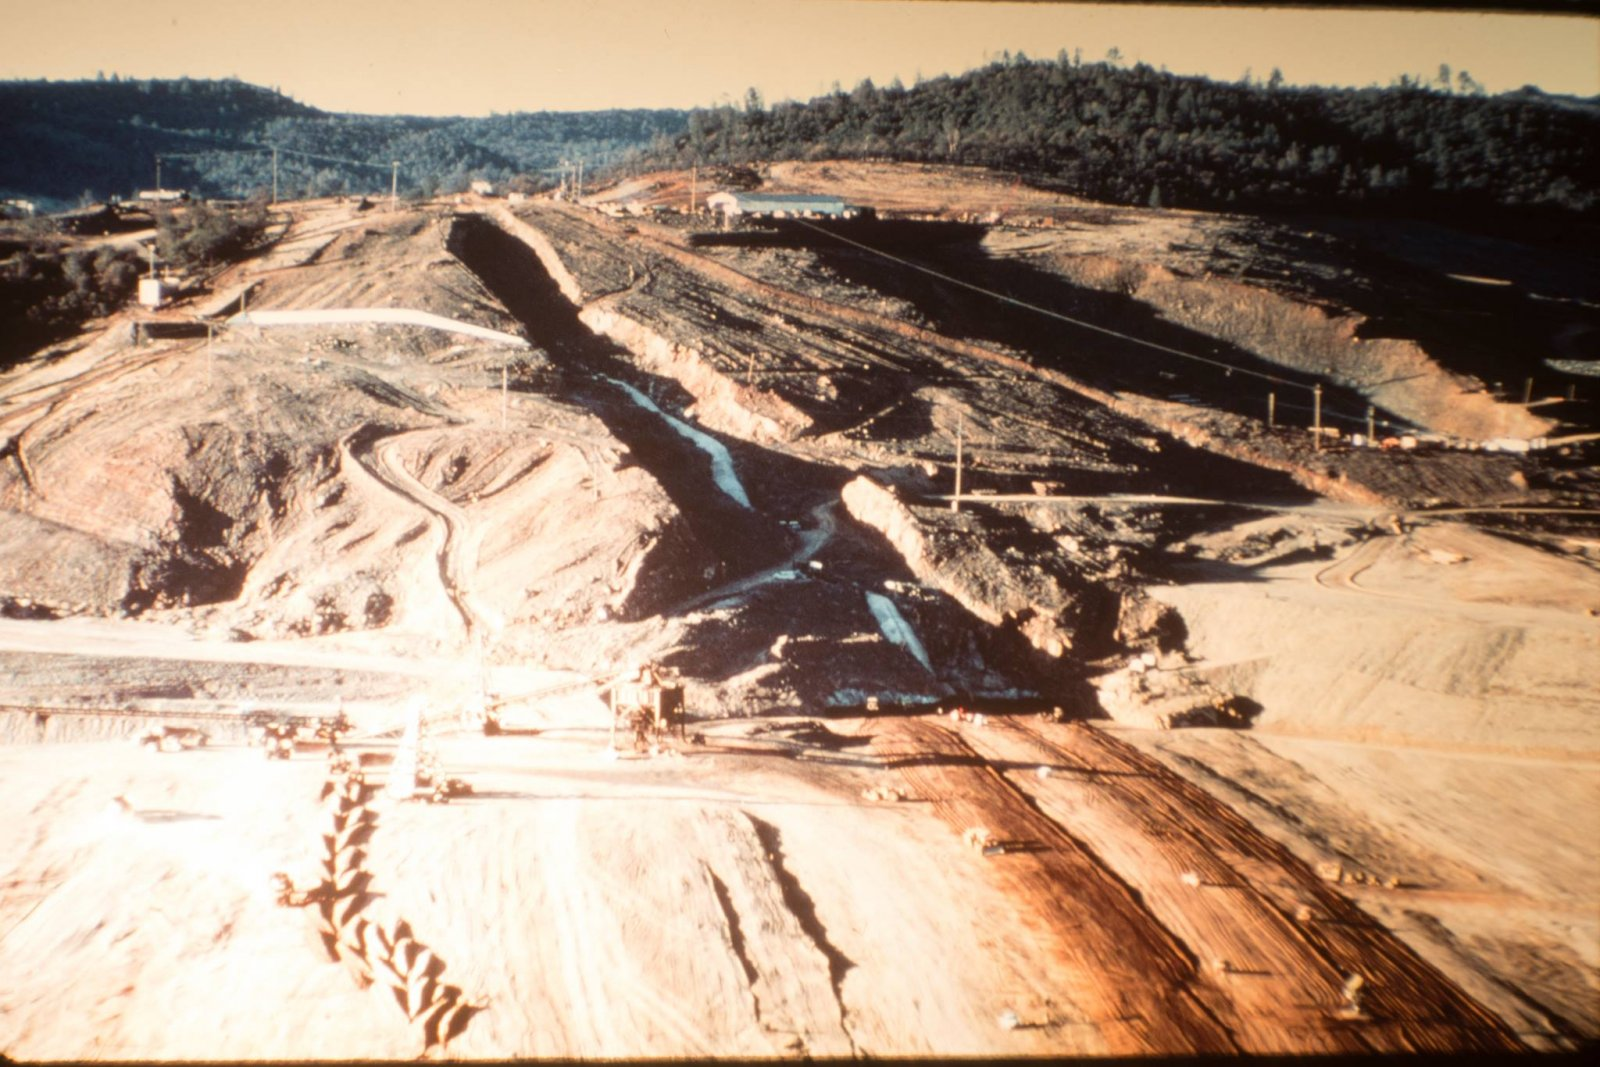 Construction-Spillway-1965_Cut-to-Bedrock.jpg